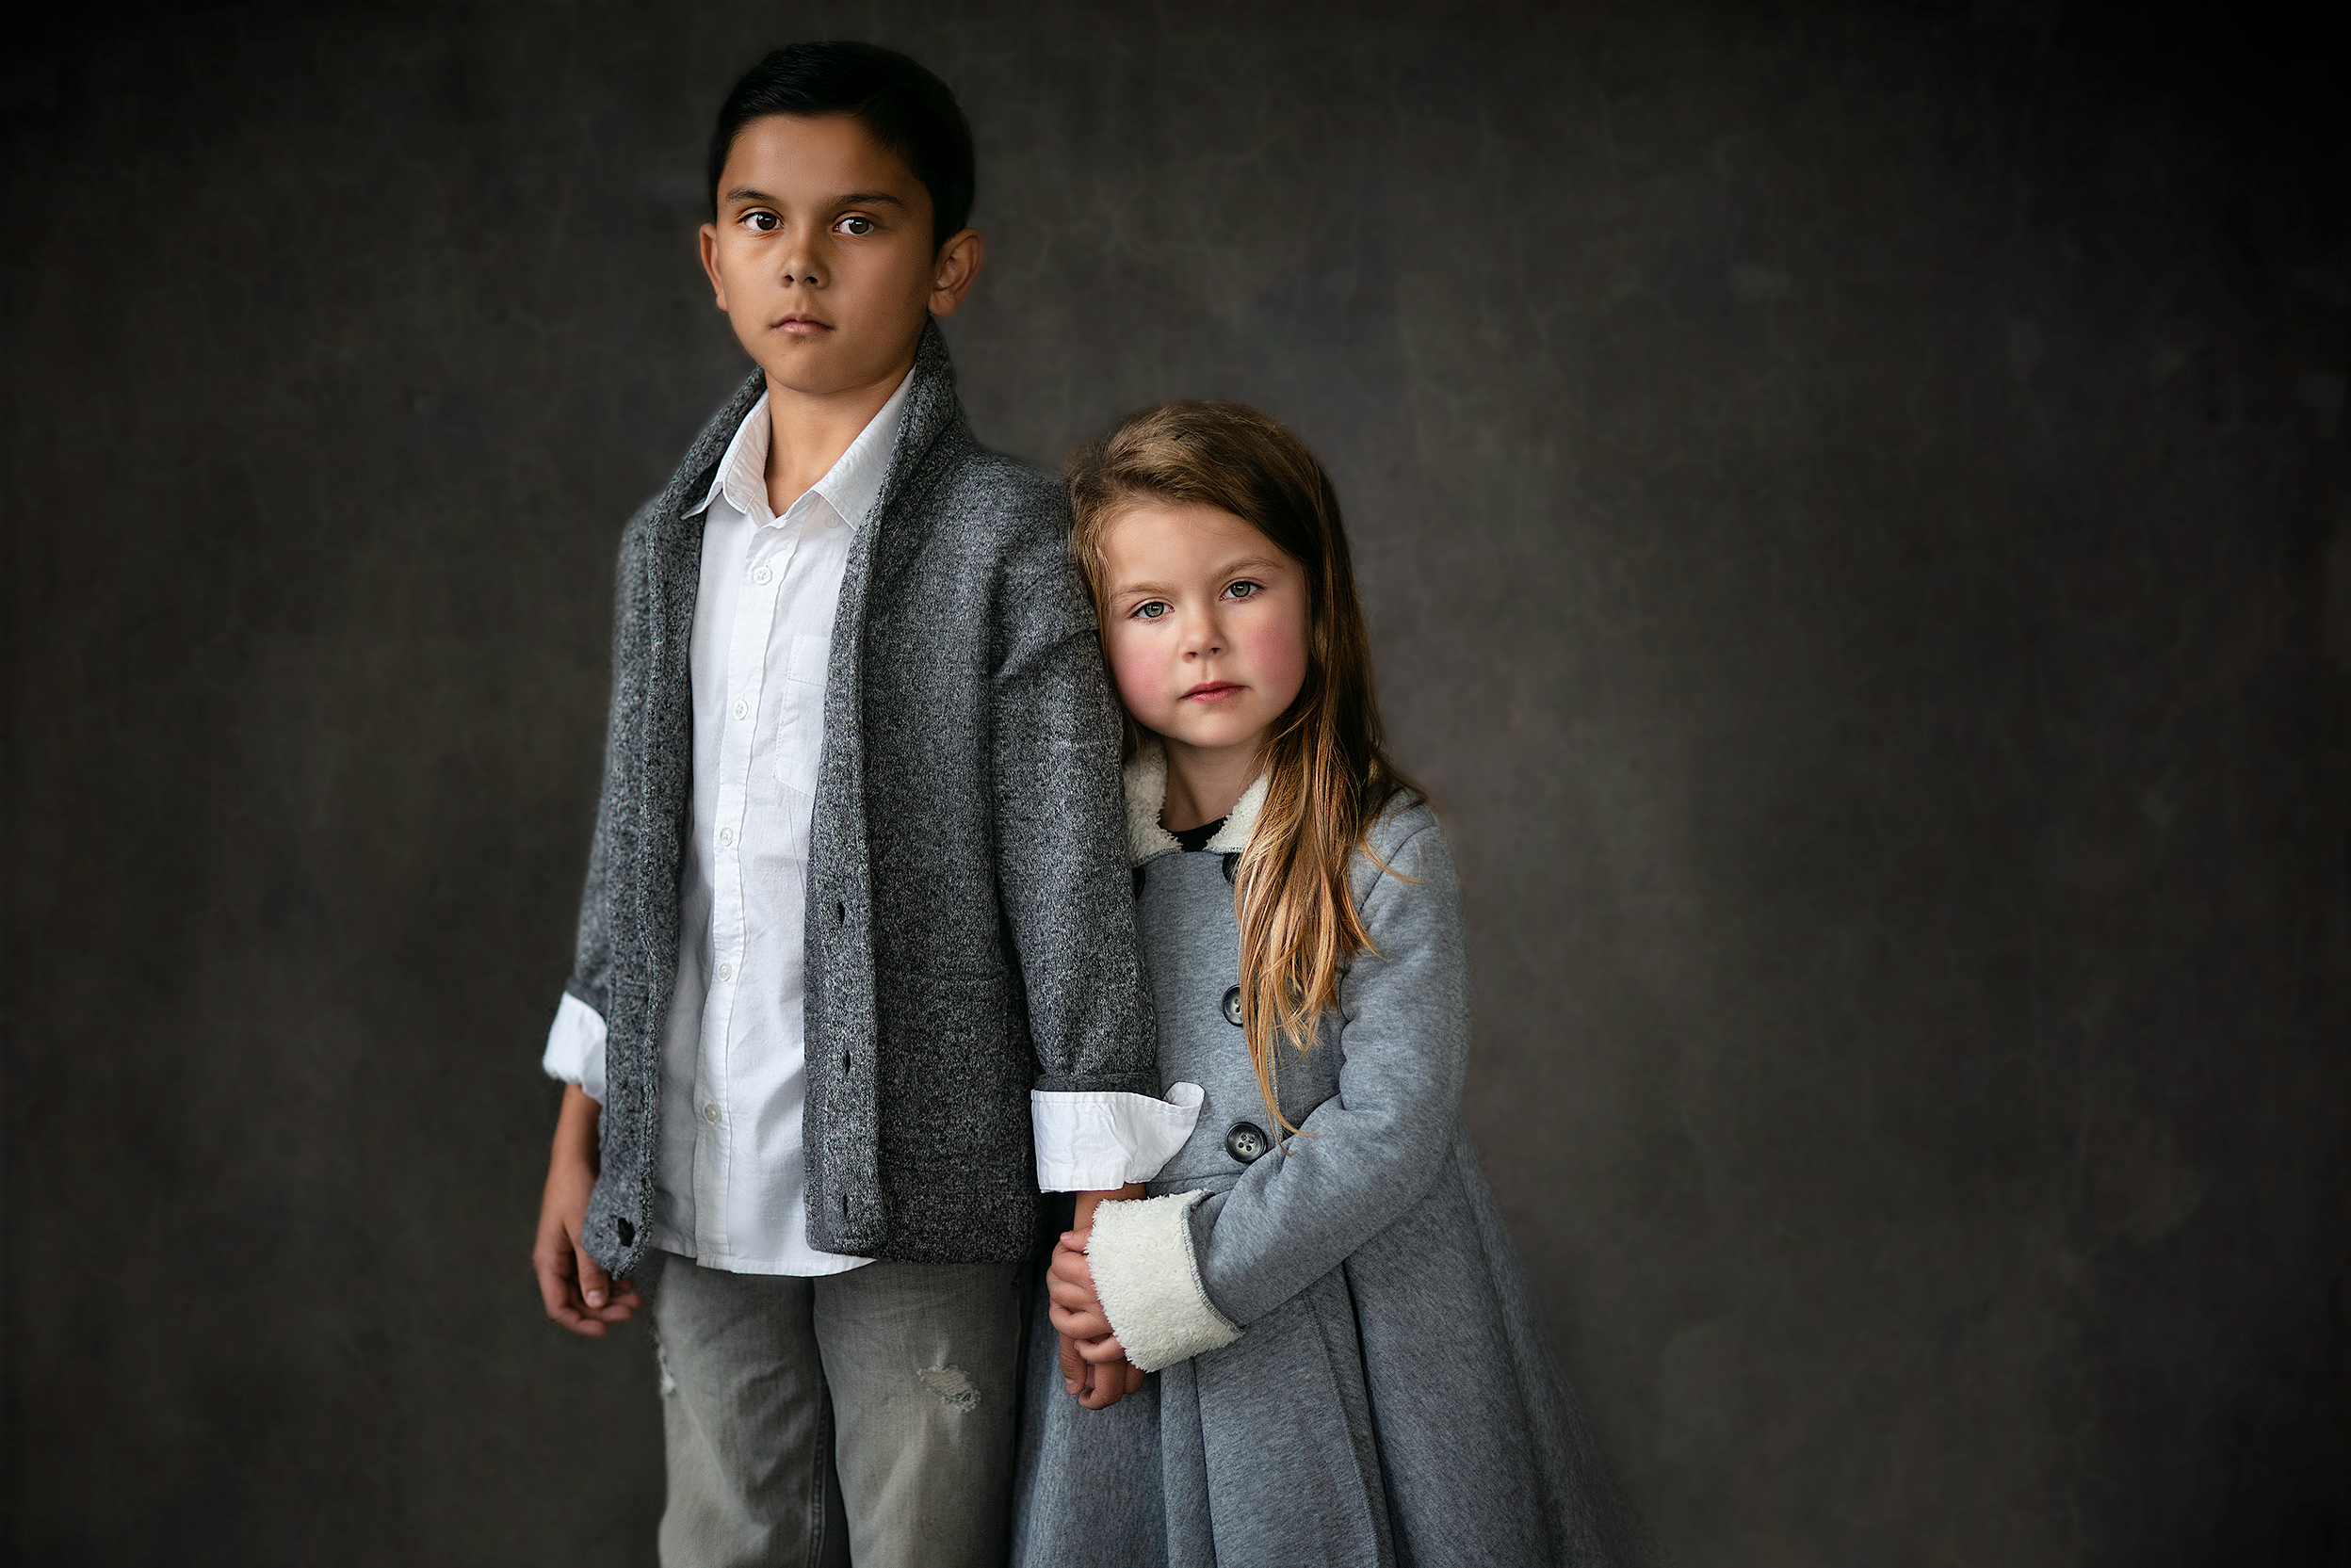 Fashion Fine Art Children's Portraiture of Brother and Sister holding hands in Studio